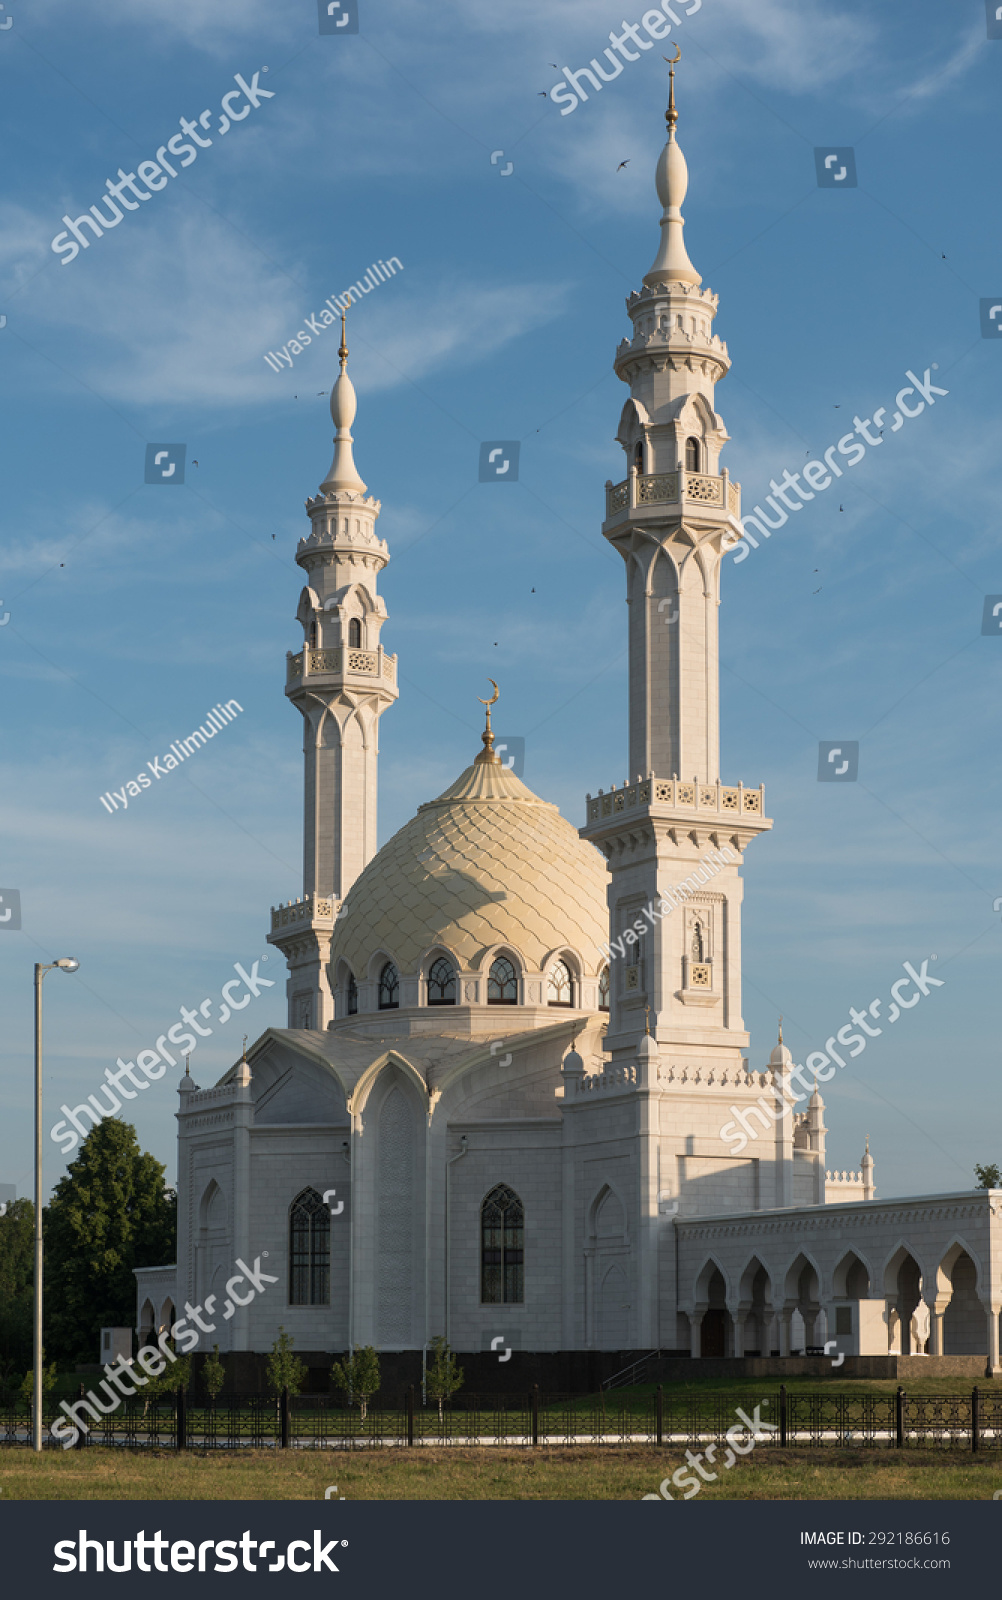 bahrain, manama. the kanoo mosque beautiful twin minarets reflect